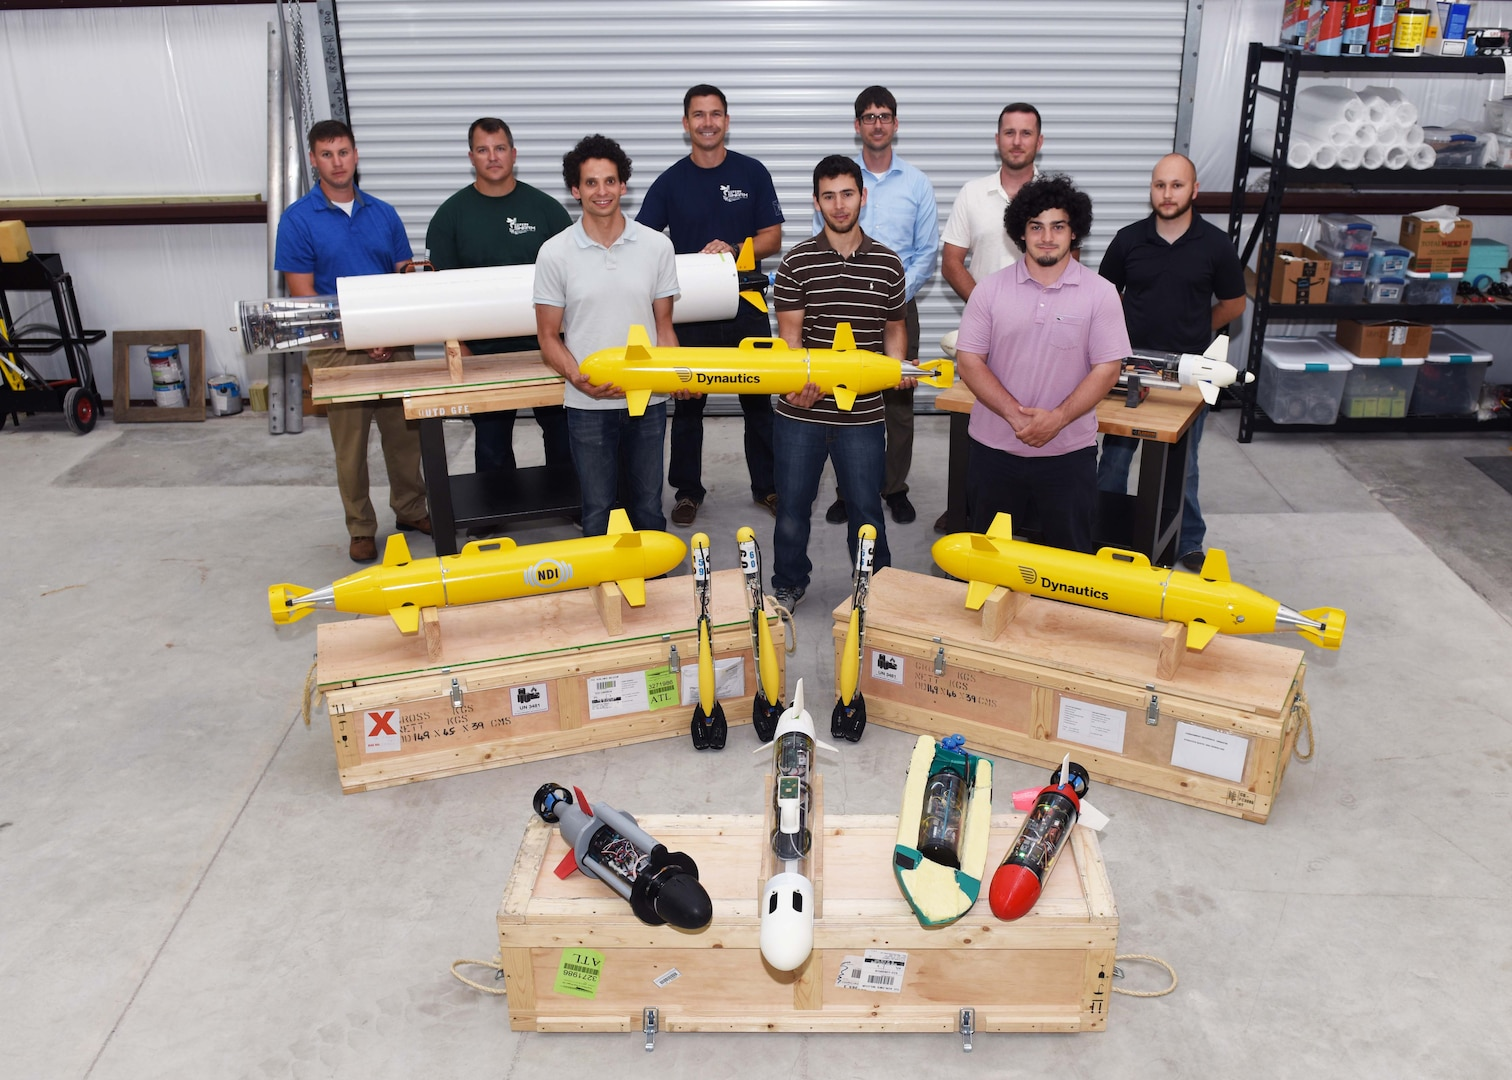 """Lead scientists and engineers from Naval Sea Systems Command Warfare Center Divisions pose for a photo as a representation of a collaborative and innovative effort in development of modular, inexpensive unmanned systems collectively known as the """"microSwarm Family of Systems,"""" or """"µFOS."""""""